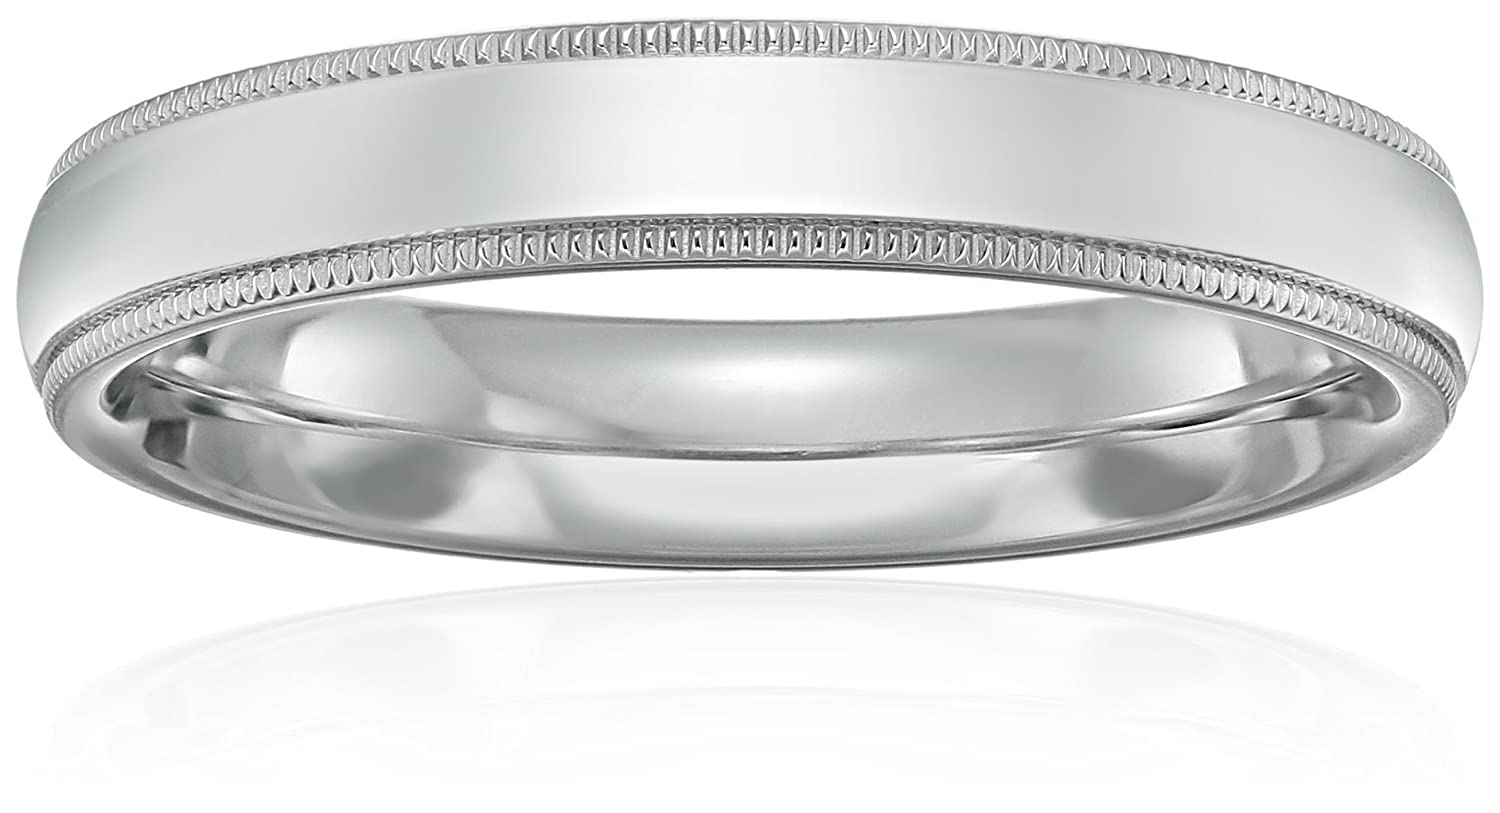 platinum bands wedding flat milgrain mm band m in banddouble essential ring tiffany wide rings ed jewelry double